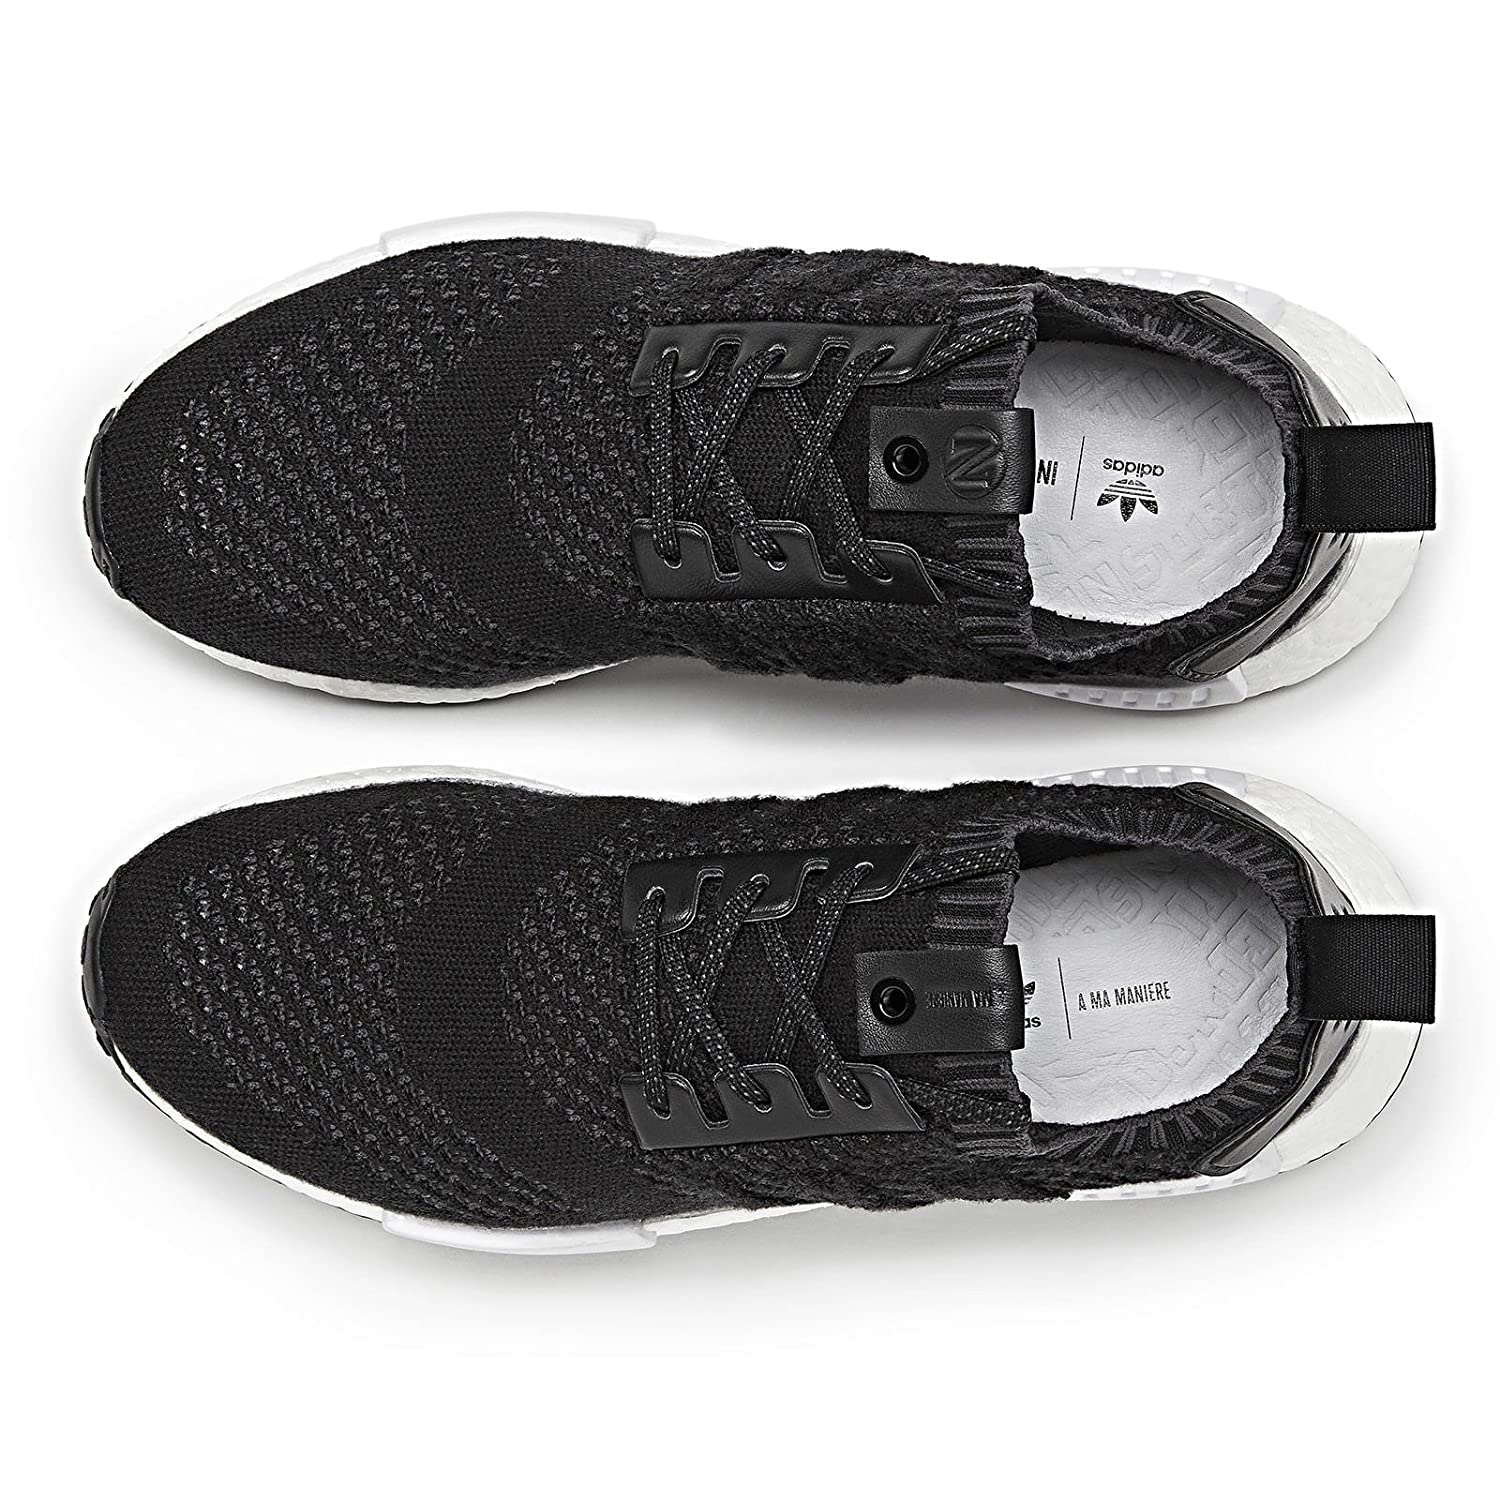 hot sale online f0529 66892 Amazon.com  adidas Consortium x A MA maniere x Invincible Men NMD R1  Sneaker Exchange (BlackNight Grey)  Fashion Sneakers